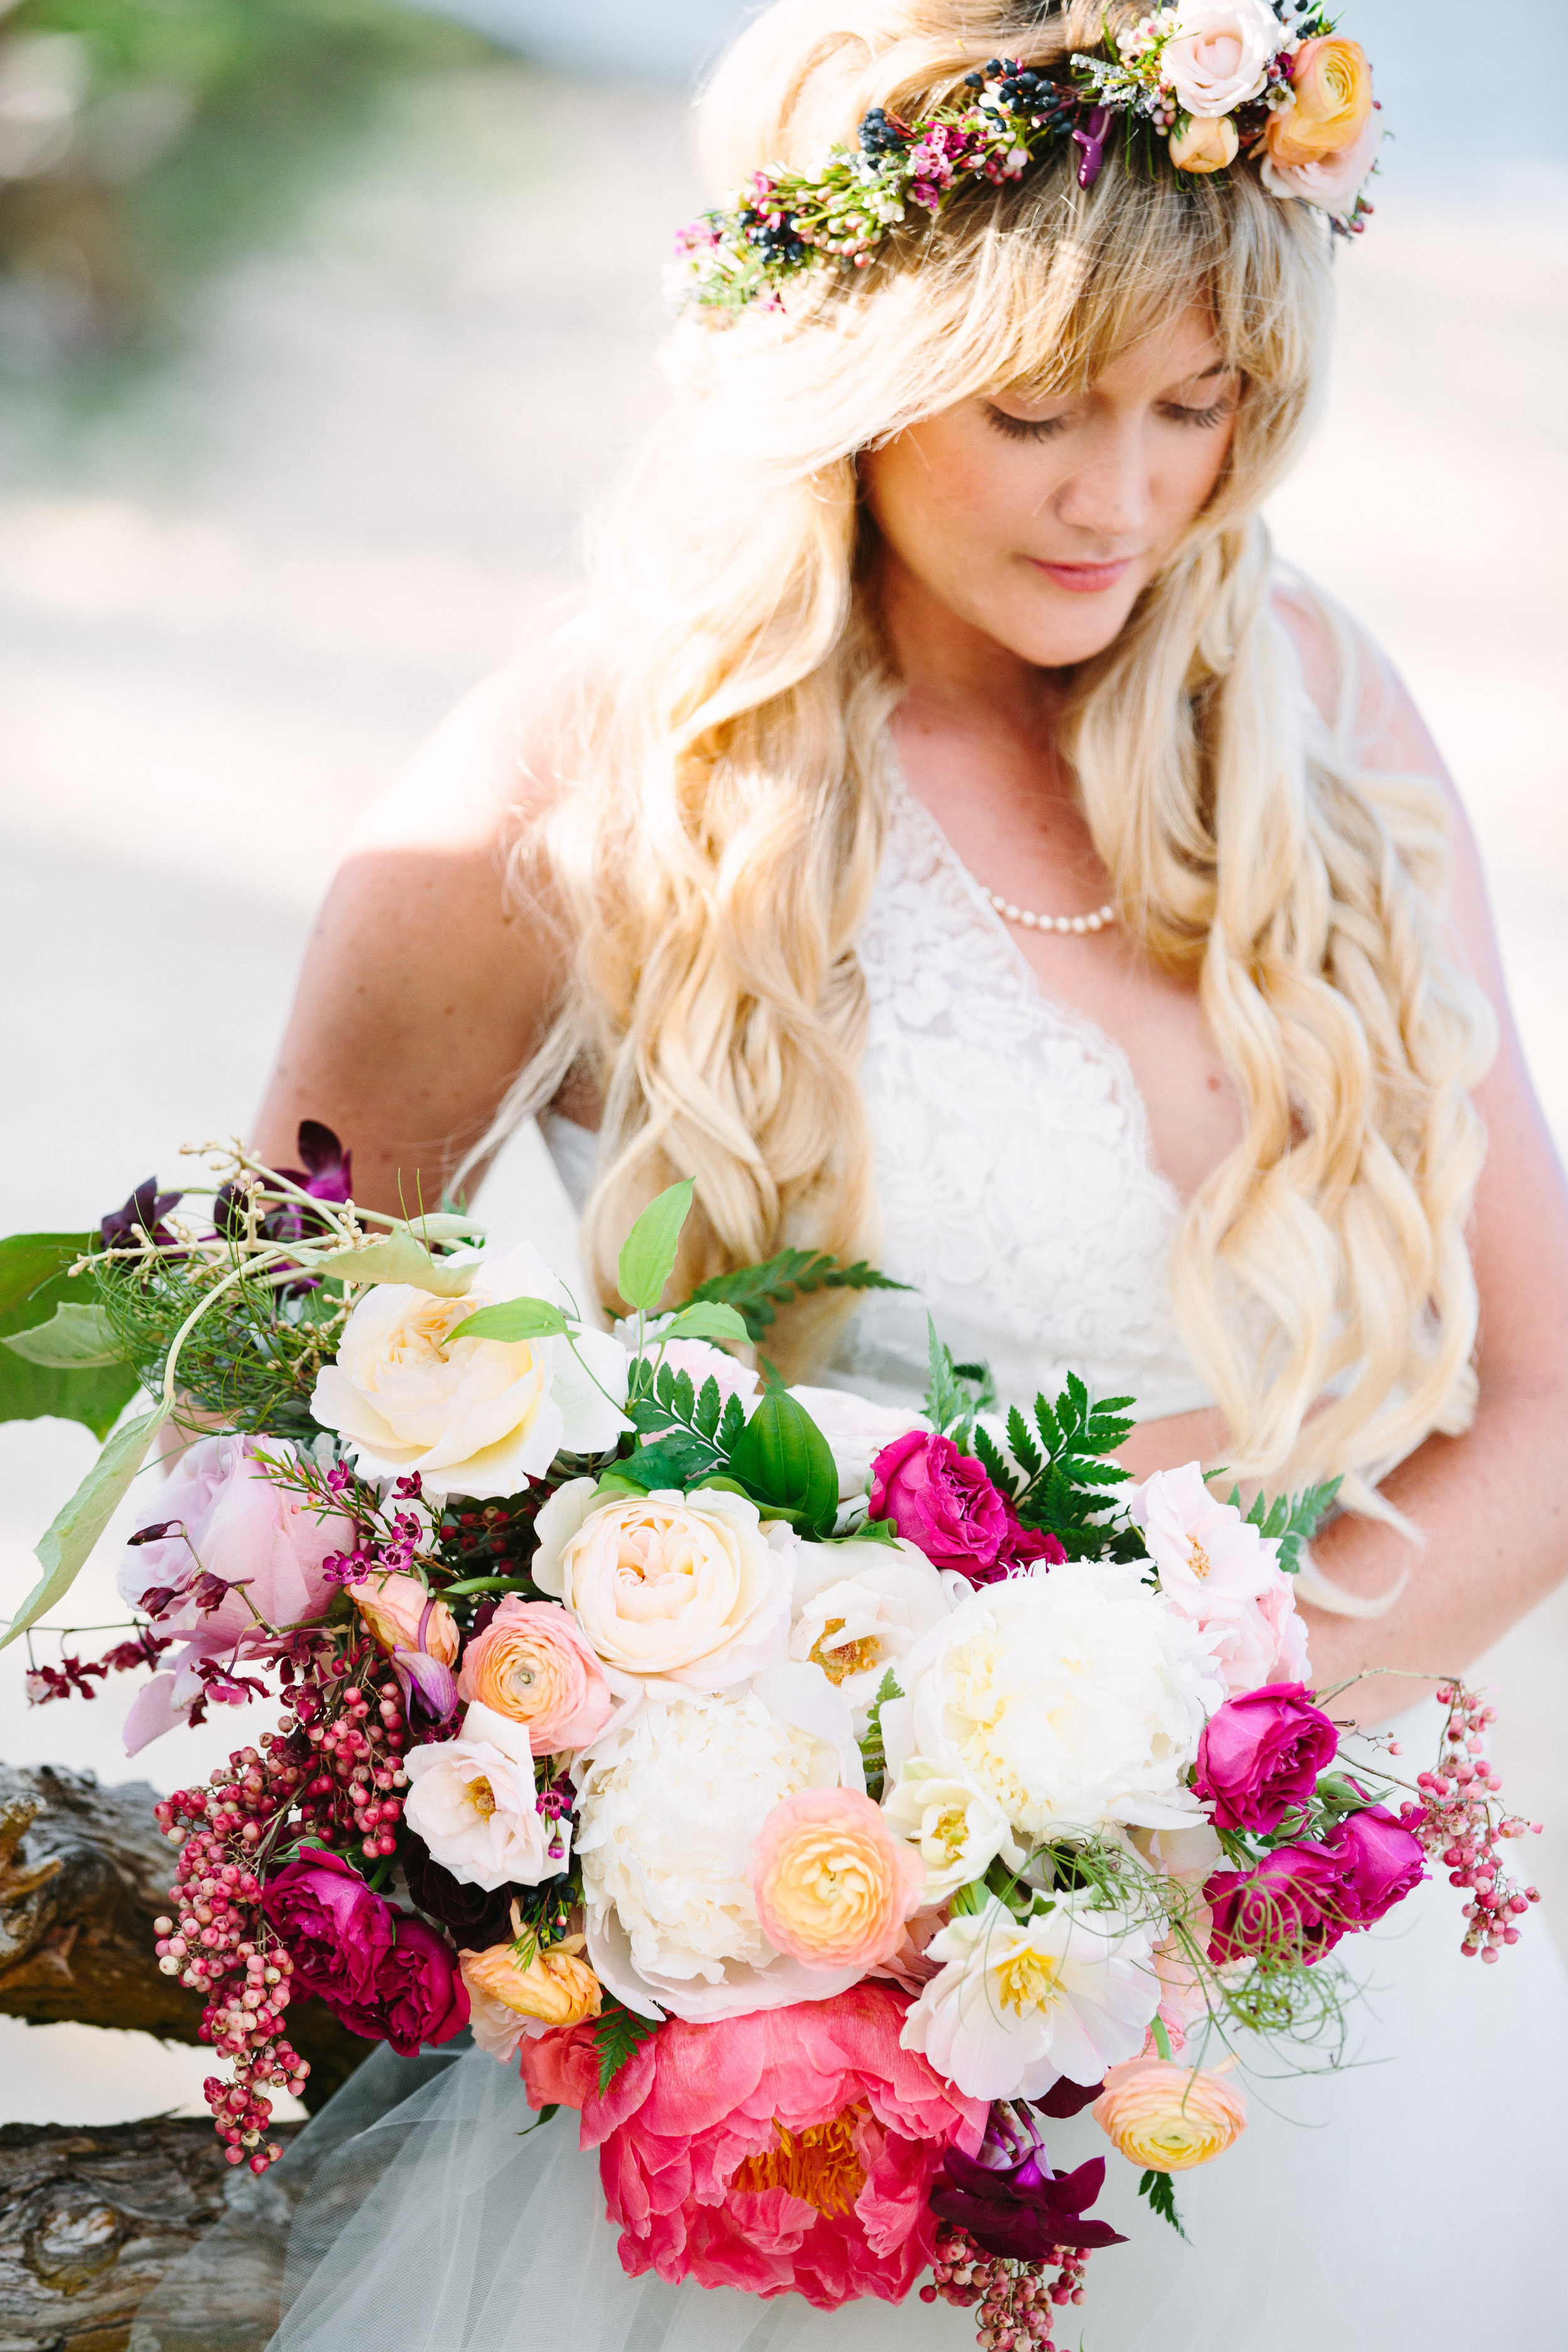 bouquet florals by Passion Roots | AbsolutelyLovedPhotography | Oahu, Hawaii